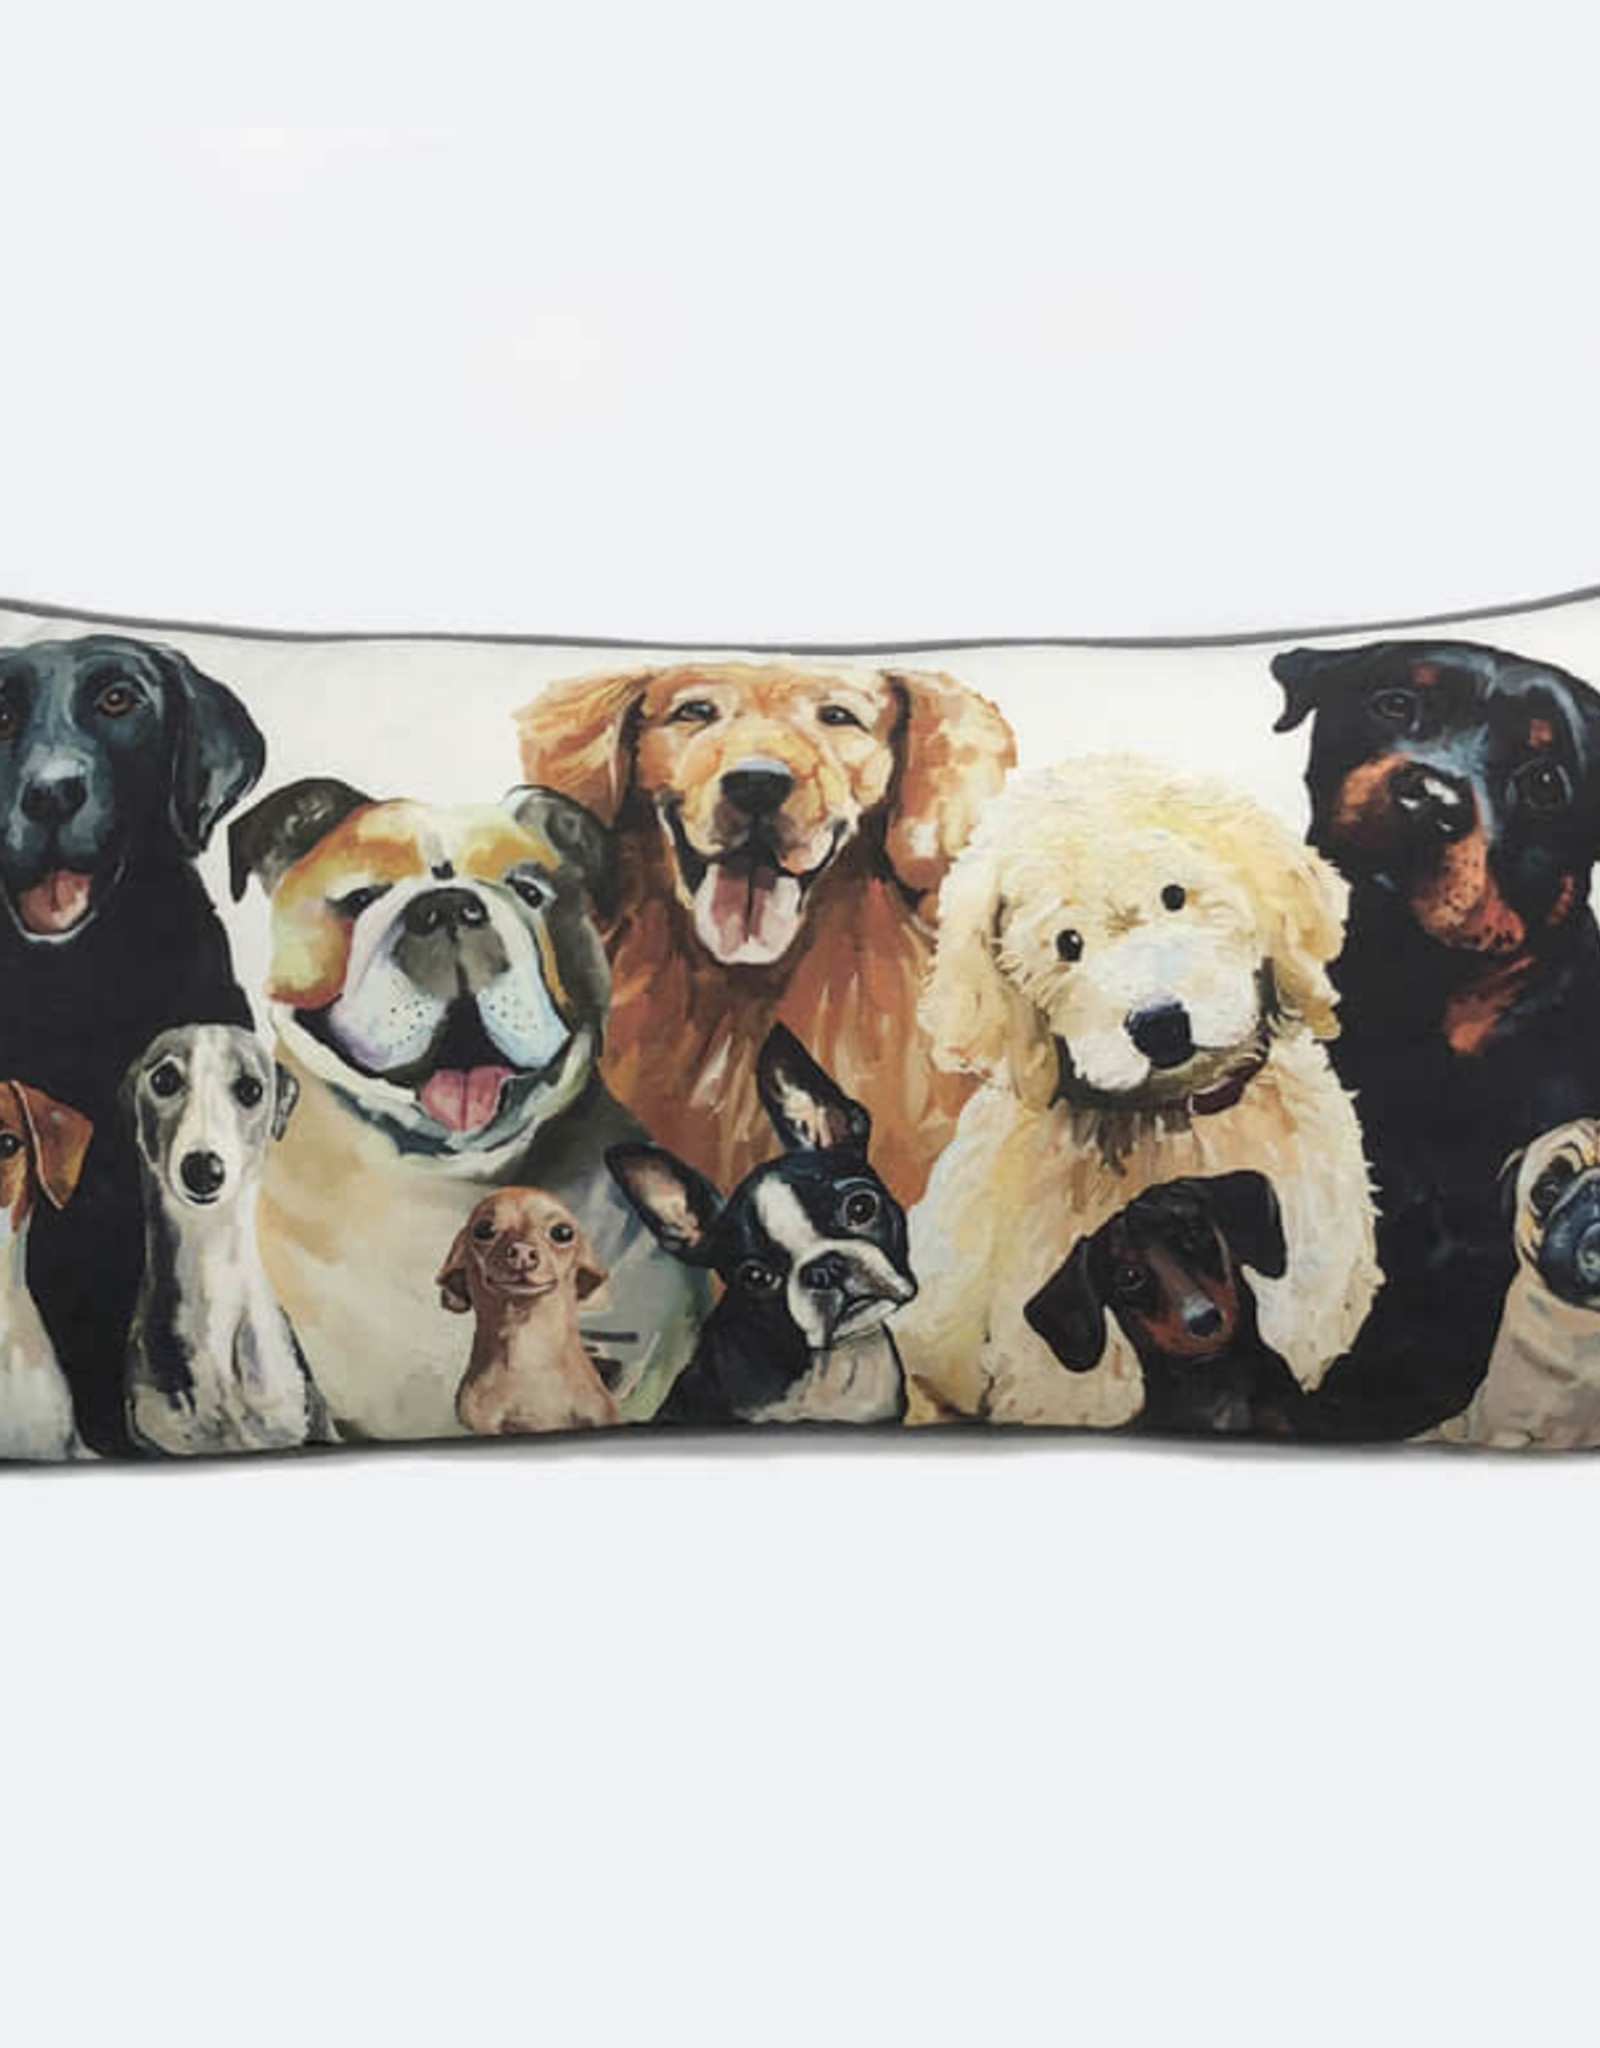 Greenbox Art Dog Bunch Pillow 28x14